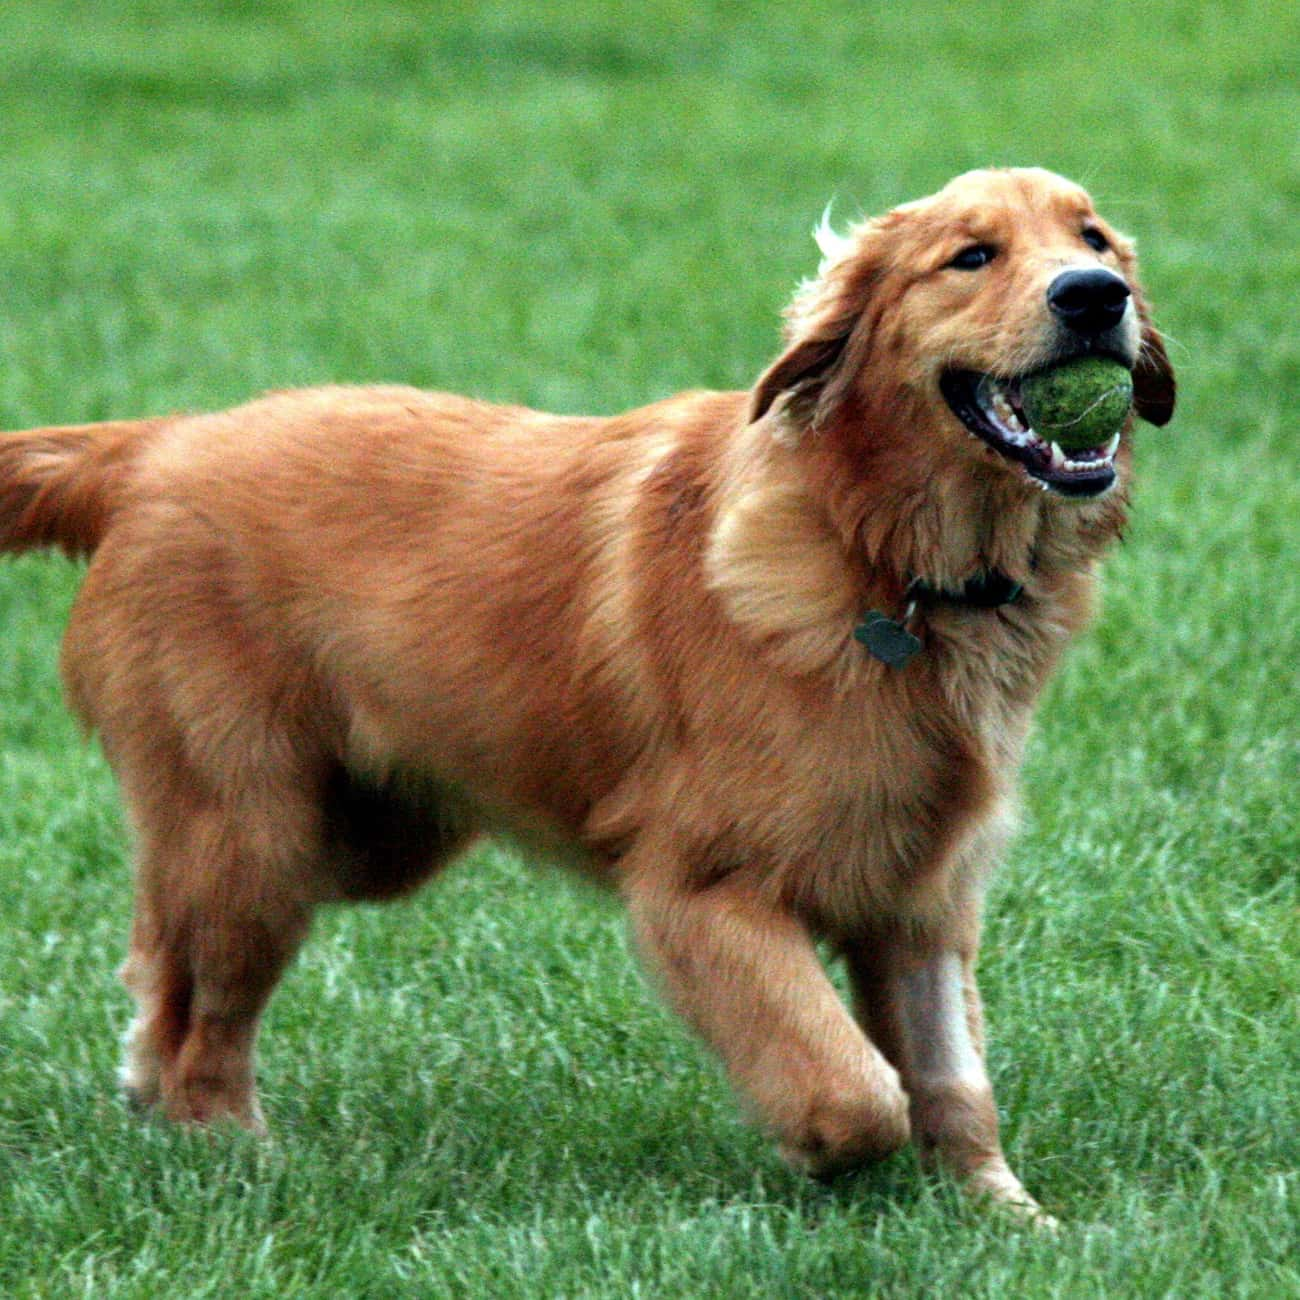 Gemini - Golden Retriever is listed (or ranked) 3 on the list Which Dog Breed Should You Get, Based On Your Zodiac Sign?